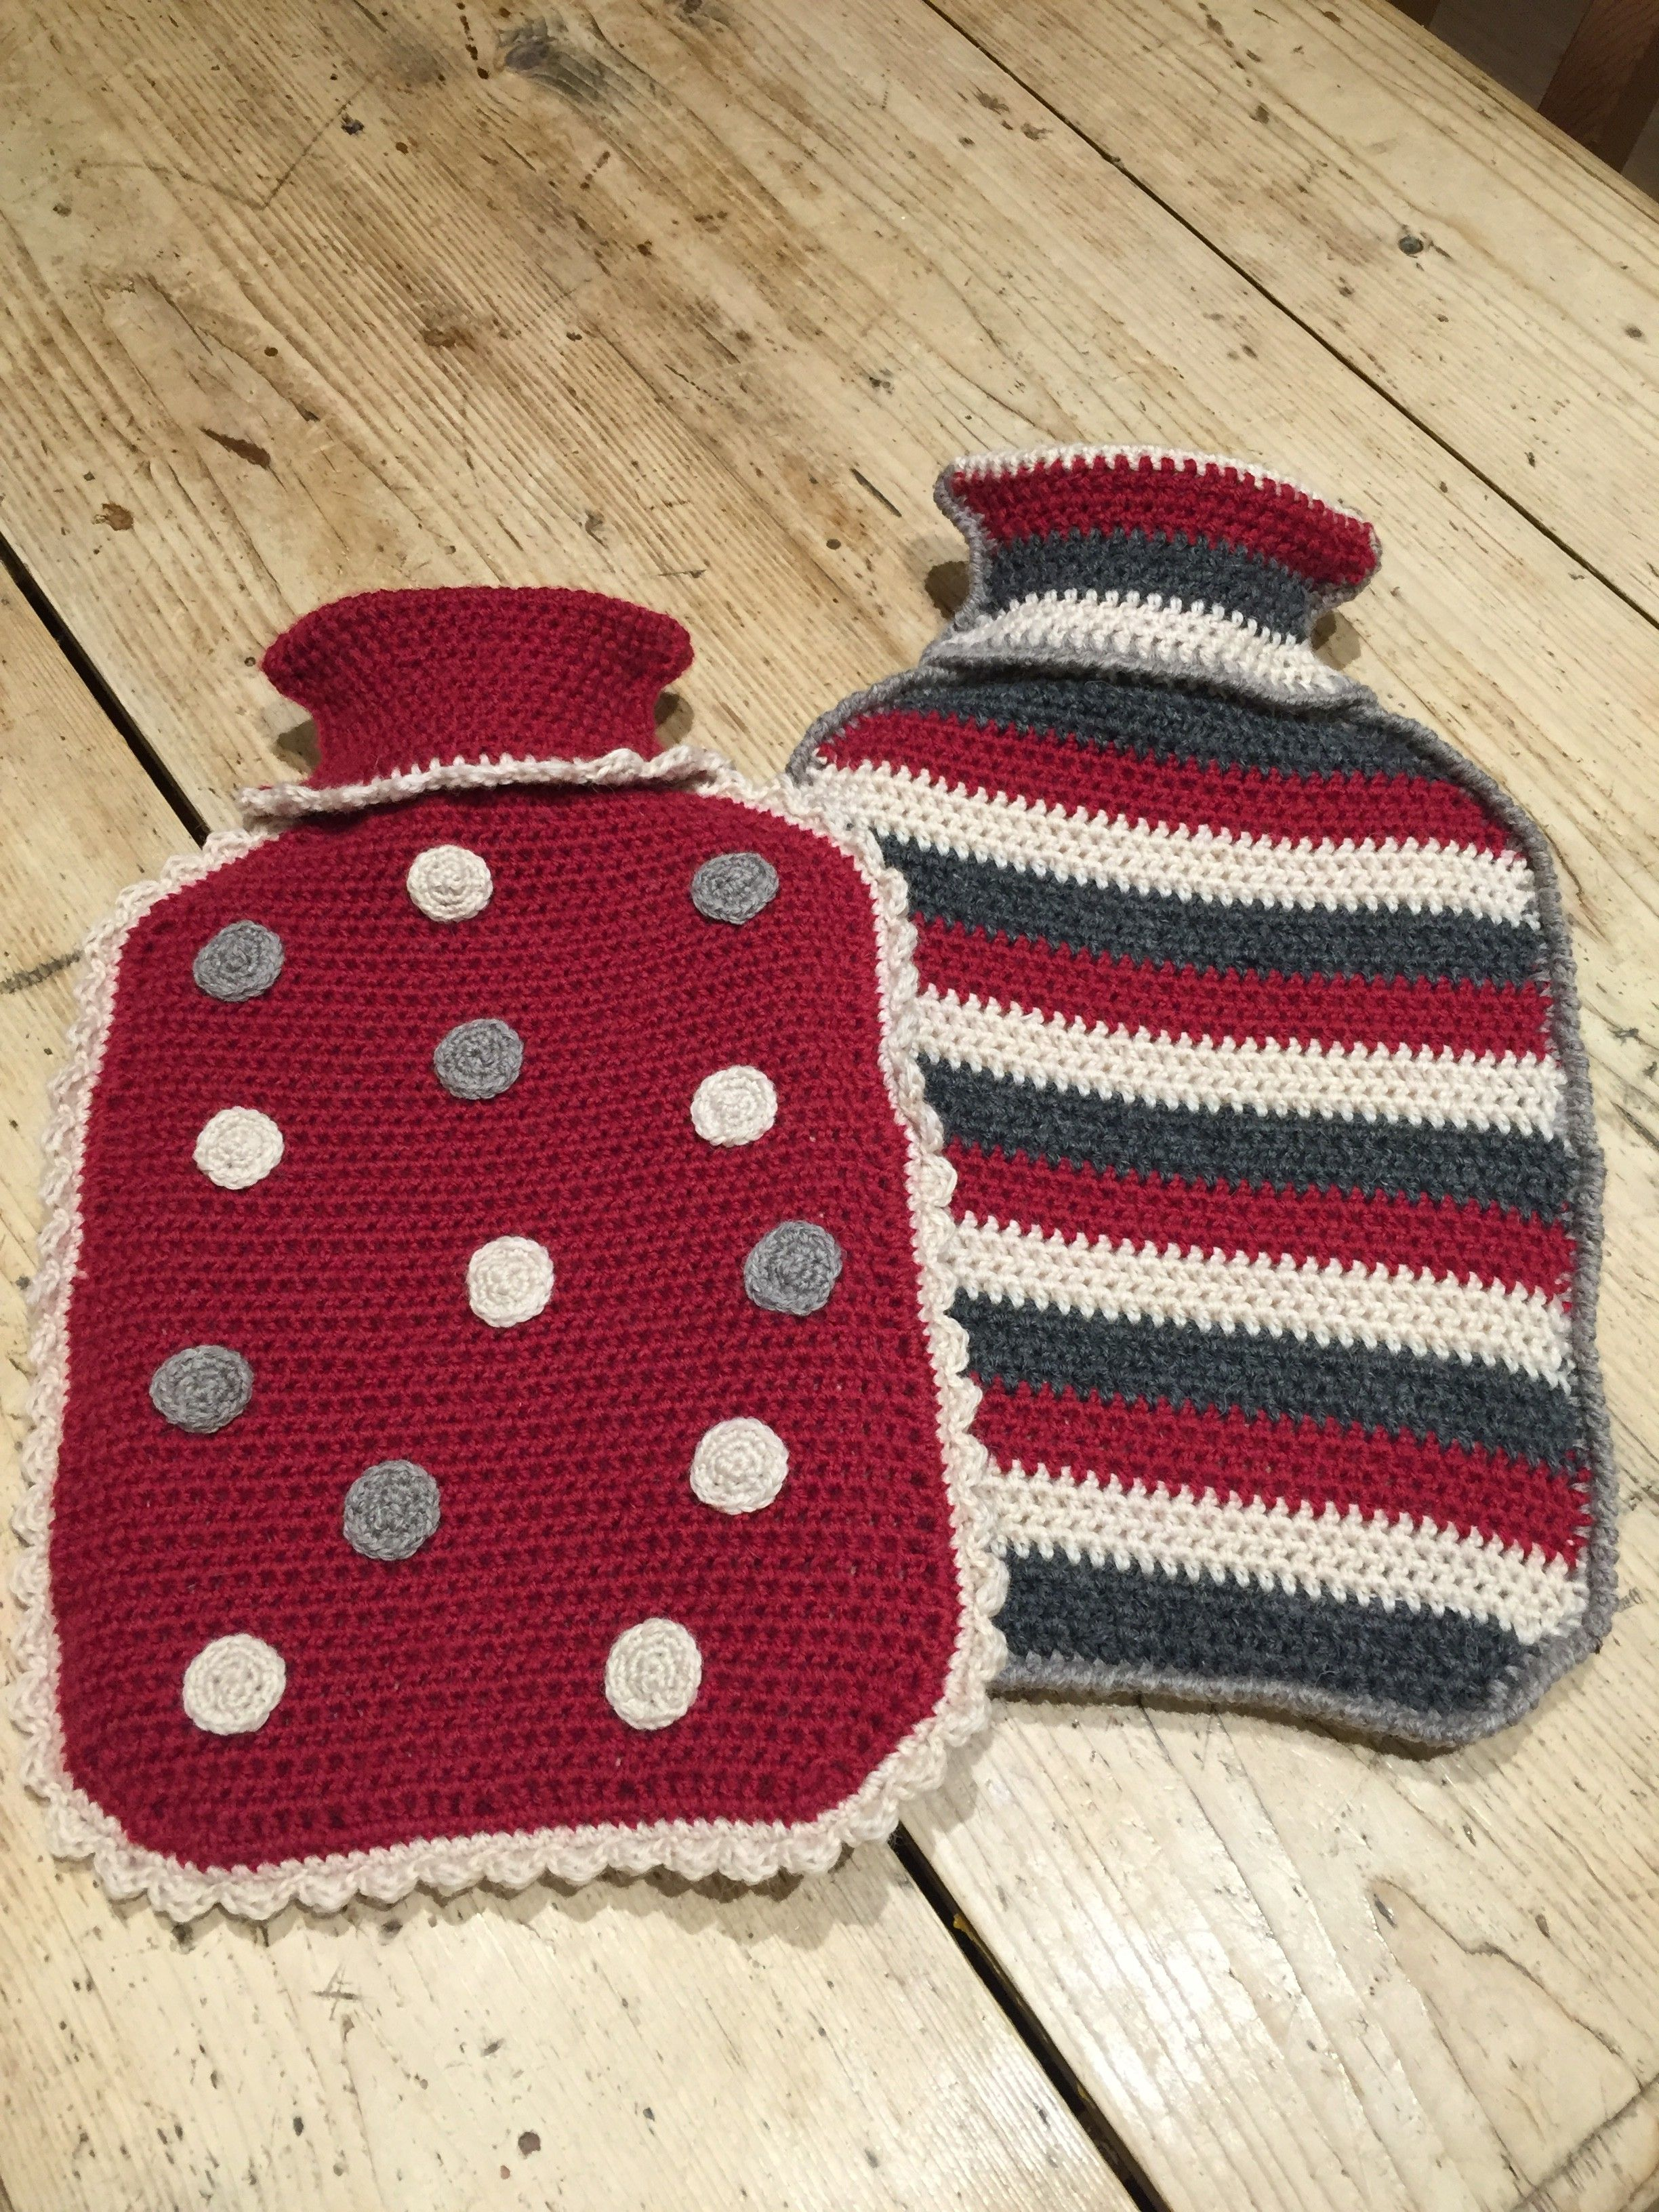 Crochet with Kate: Matching Hot Water Bottles | Water bottle covers ...